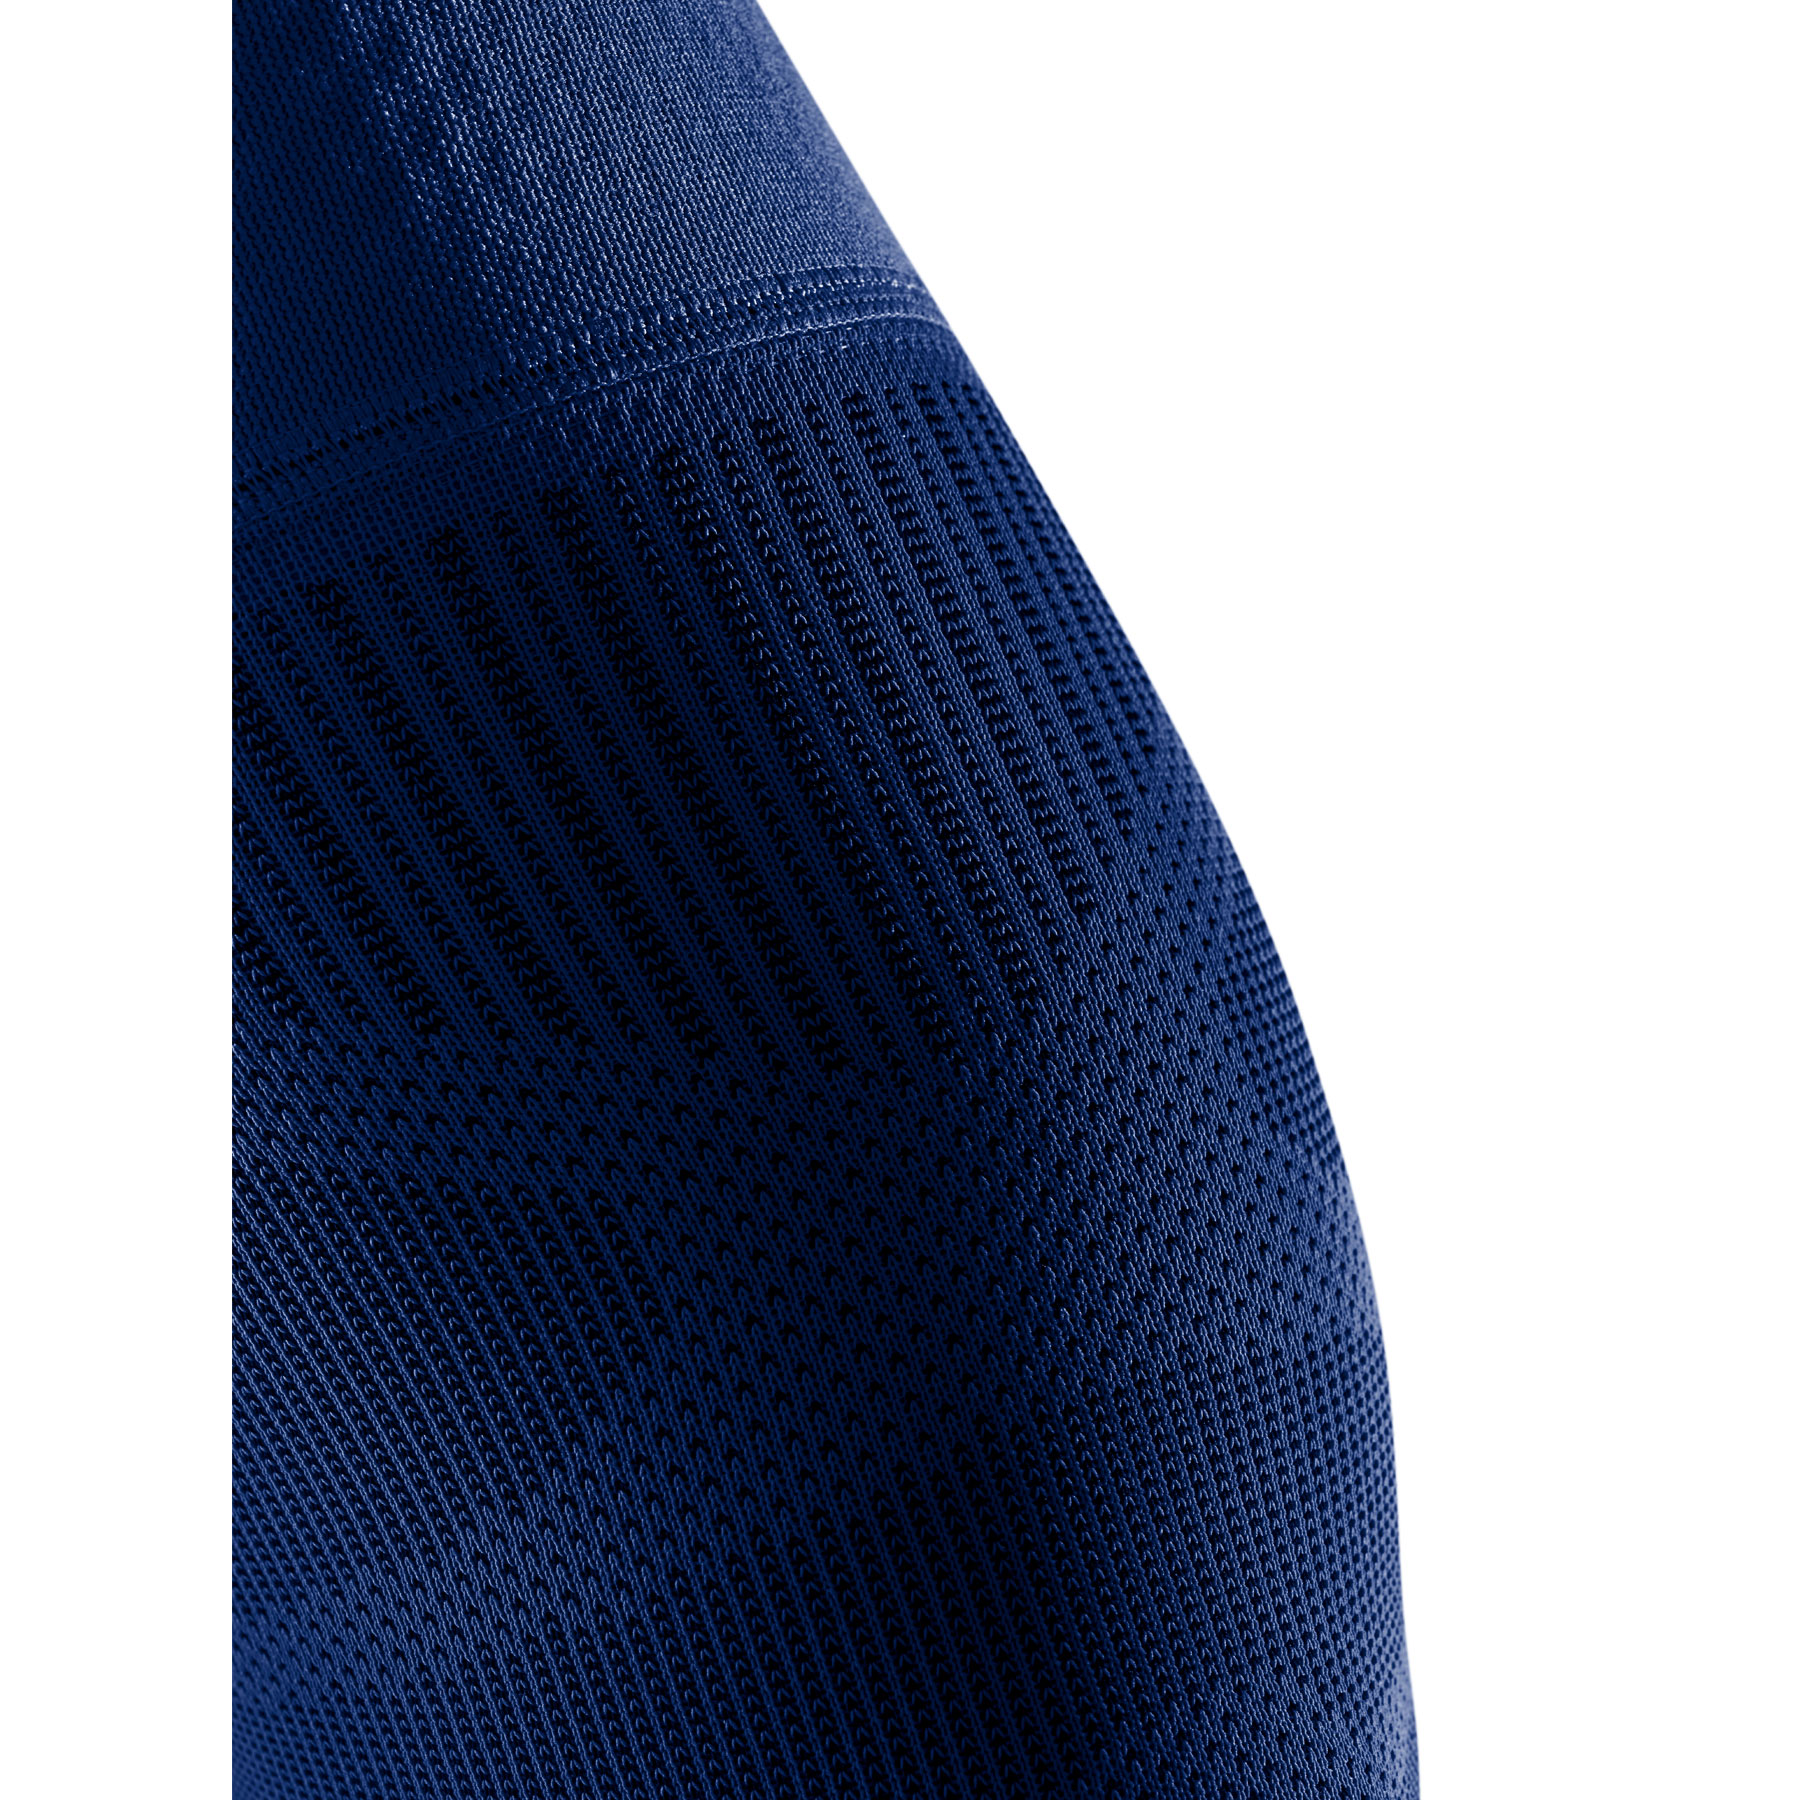 Image of Bauerfeind Sports Compression Knee Support - navy